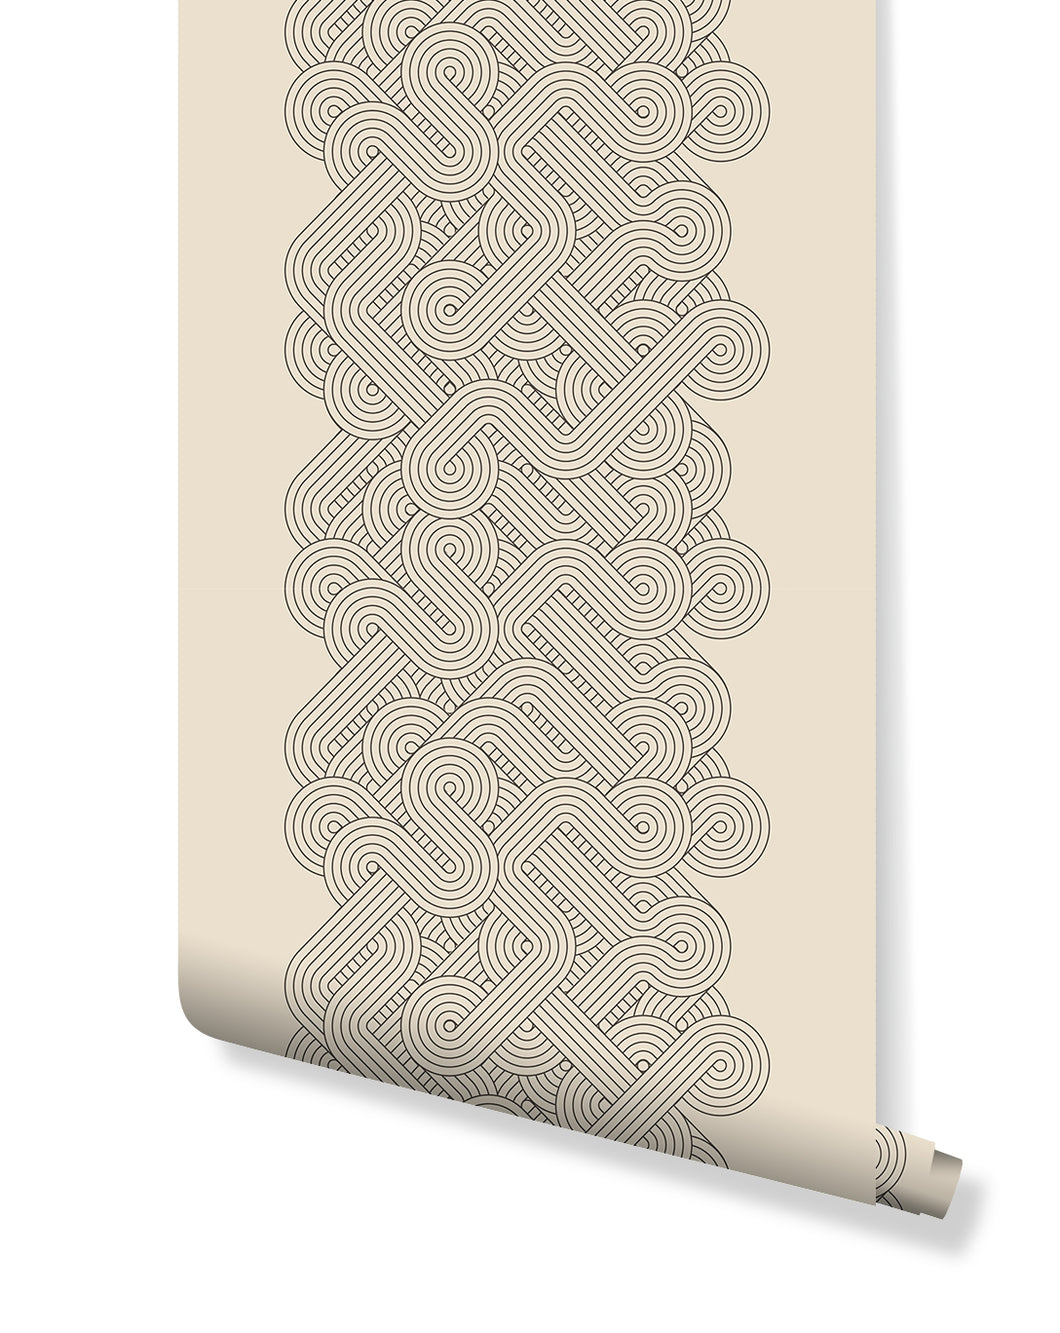 Self Adhesive Removable Wallpaper 70 S Style Retro Lines